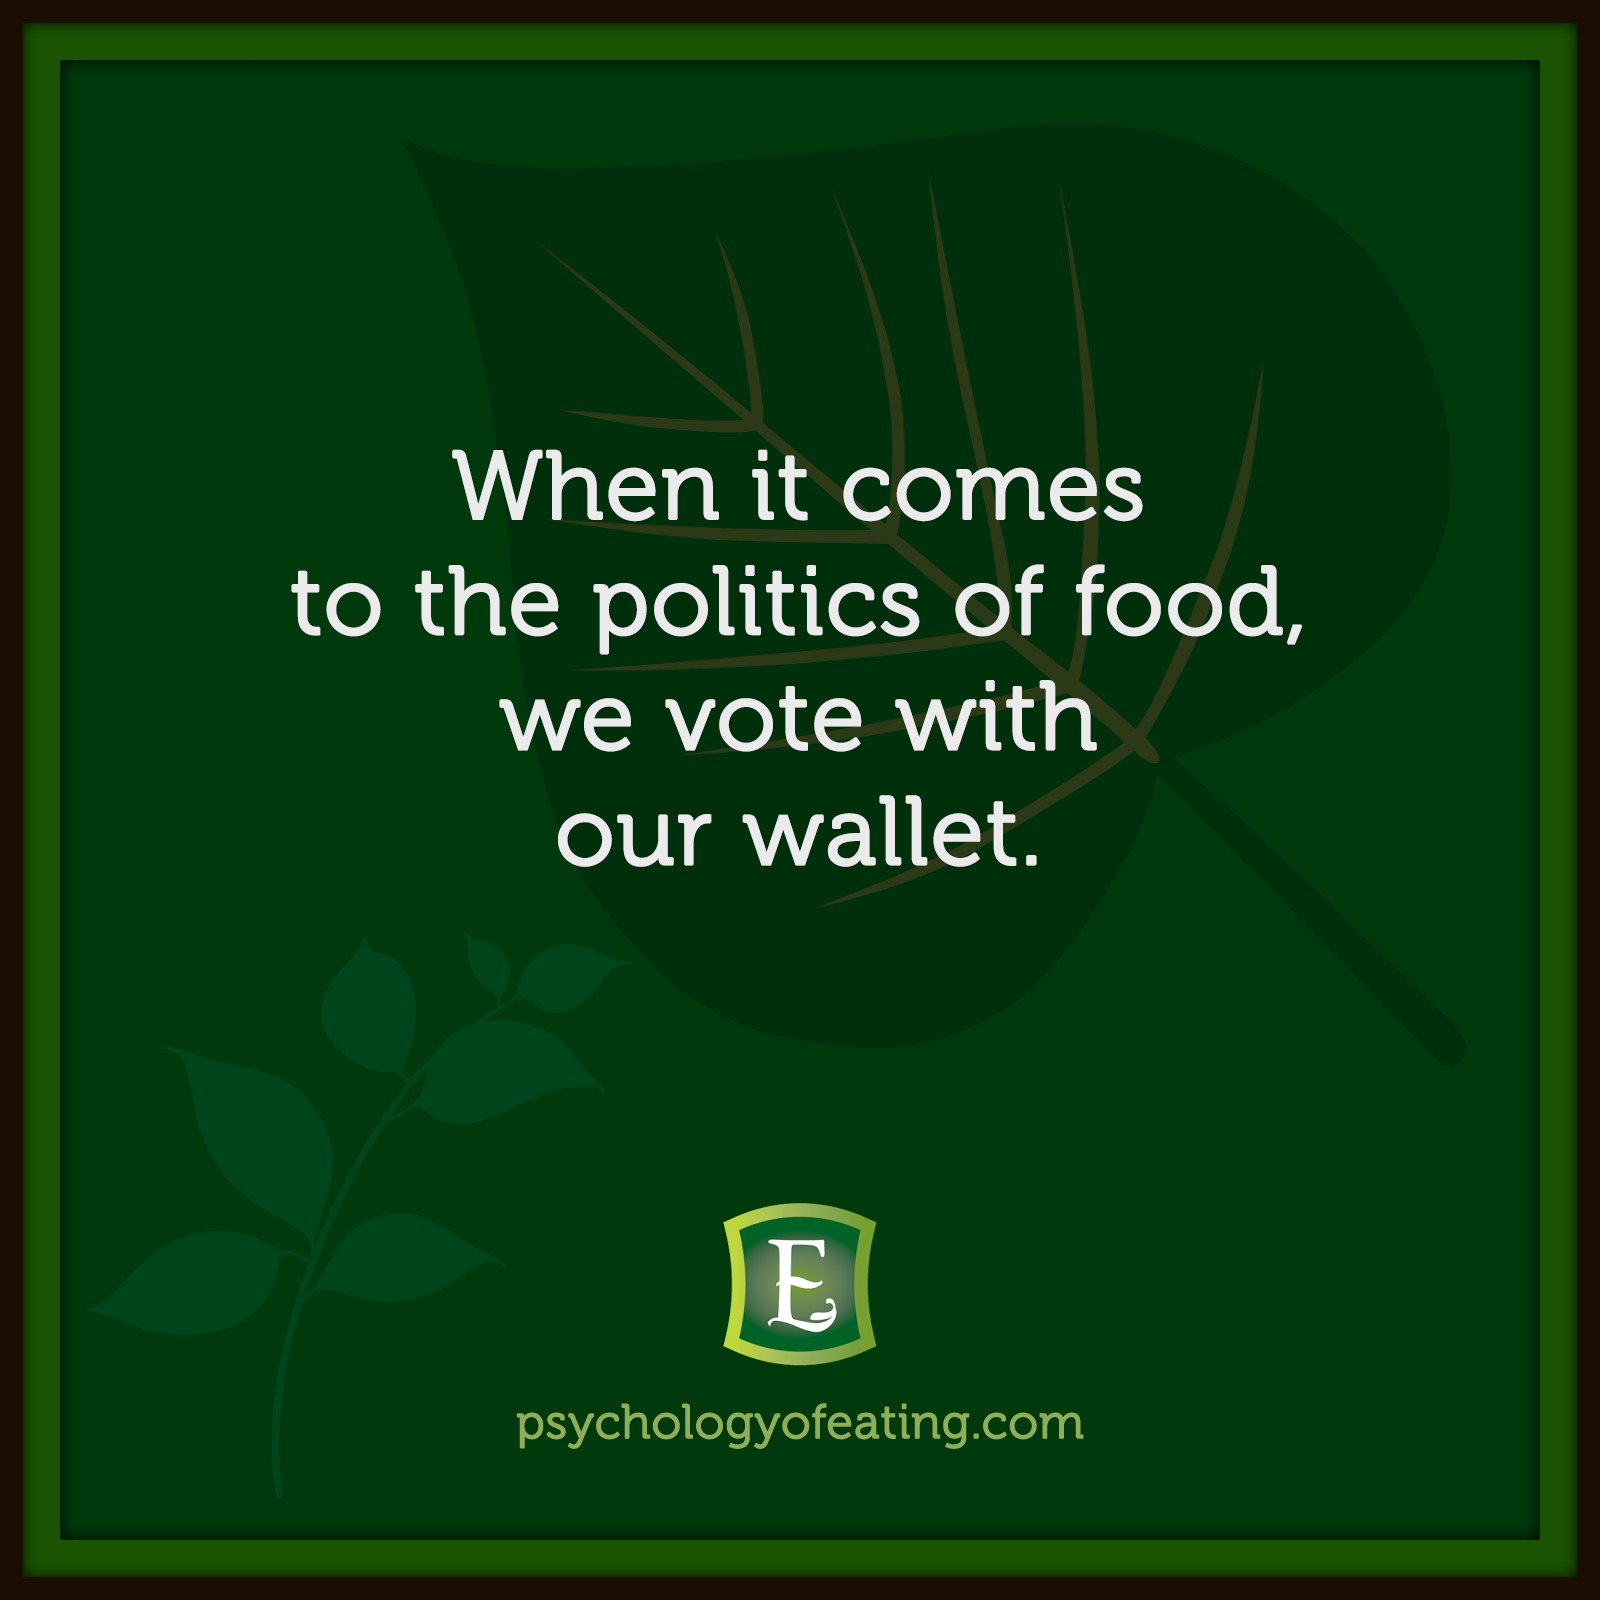 When it comes to the politics of food, we vote with our wallet. #health #nutrition #eatingpsychology #IPE